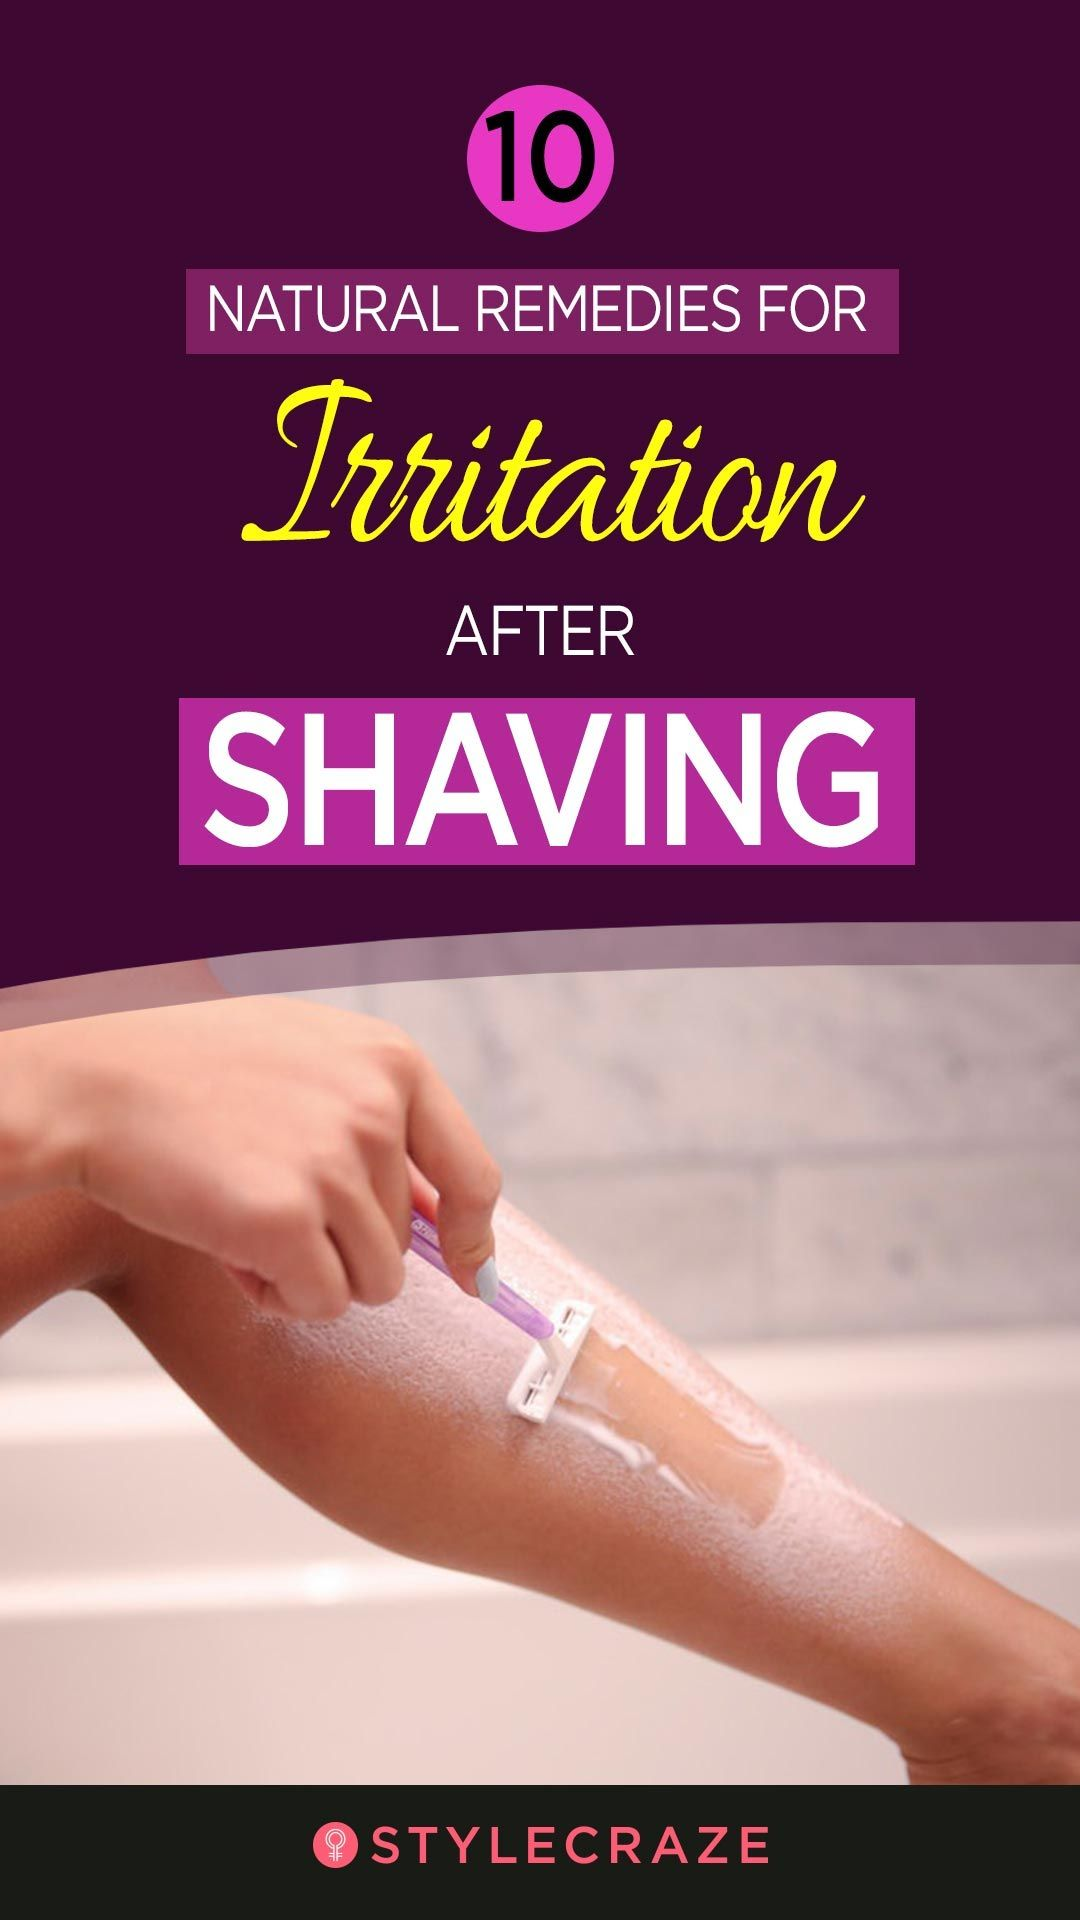 10Natural Remedies for Irritation After Shaving